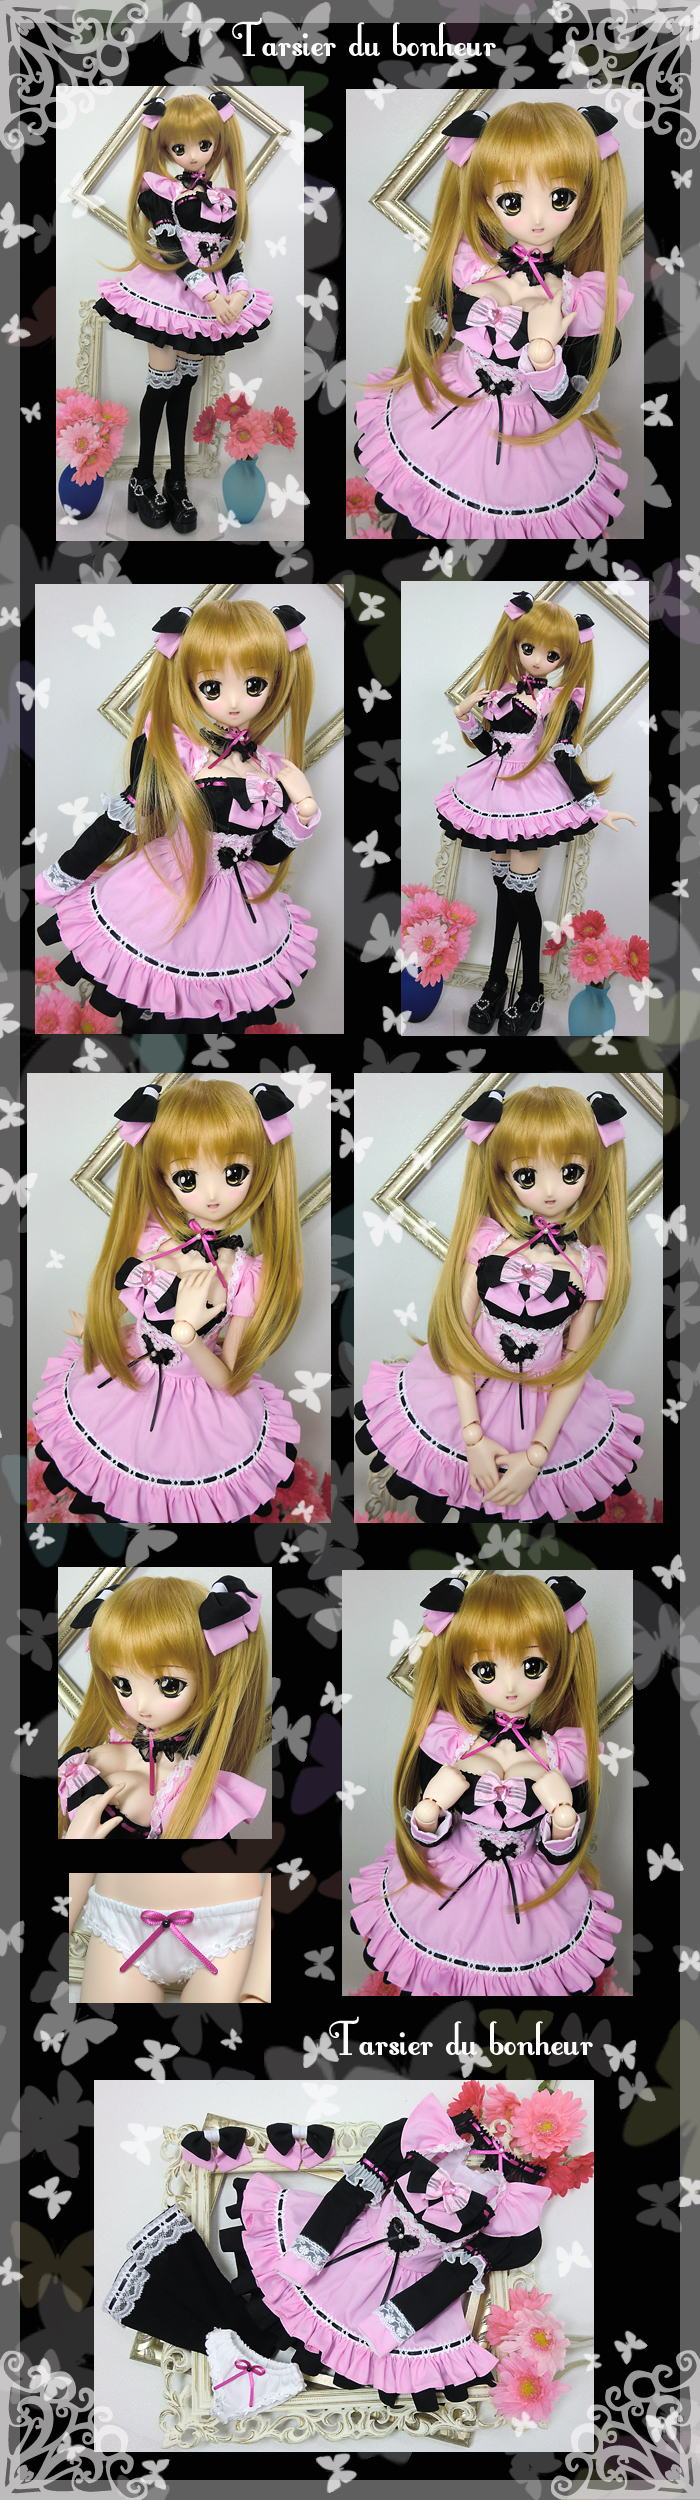 Dollfie Dream dresses November